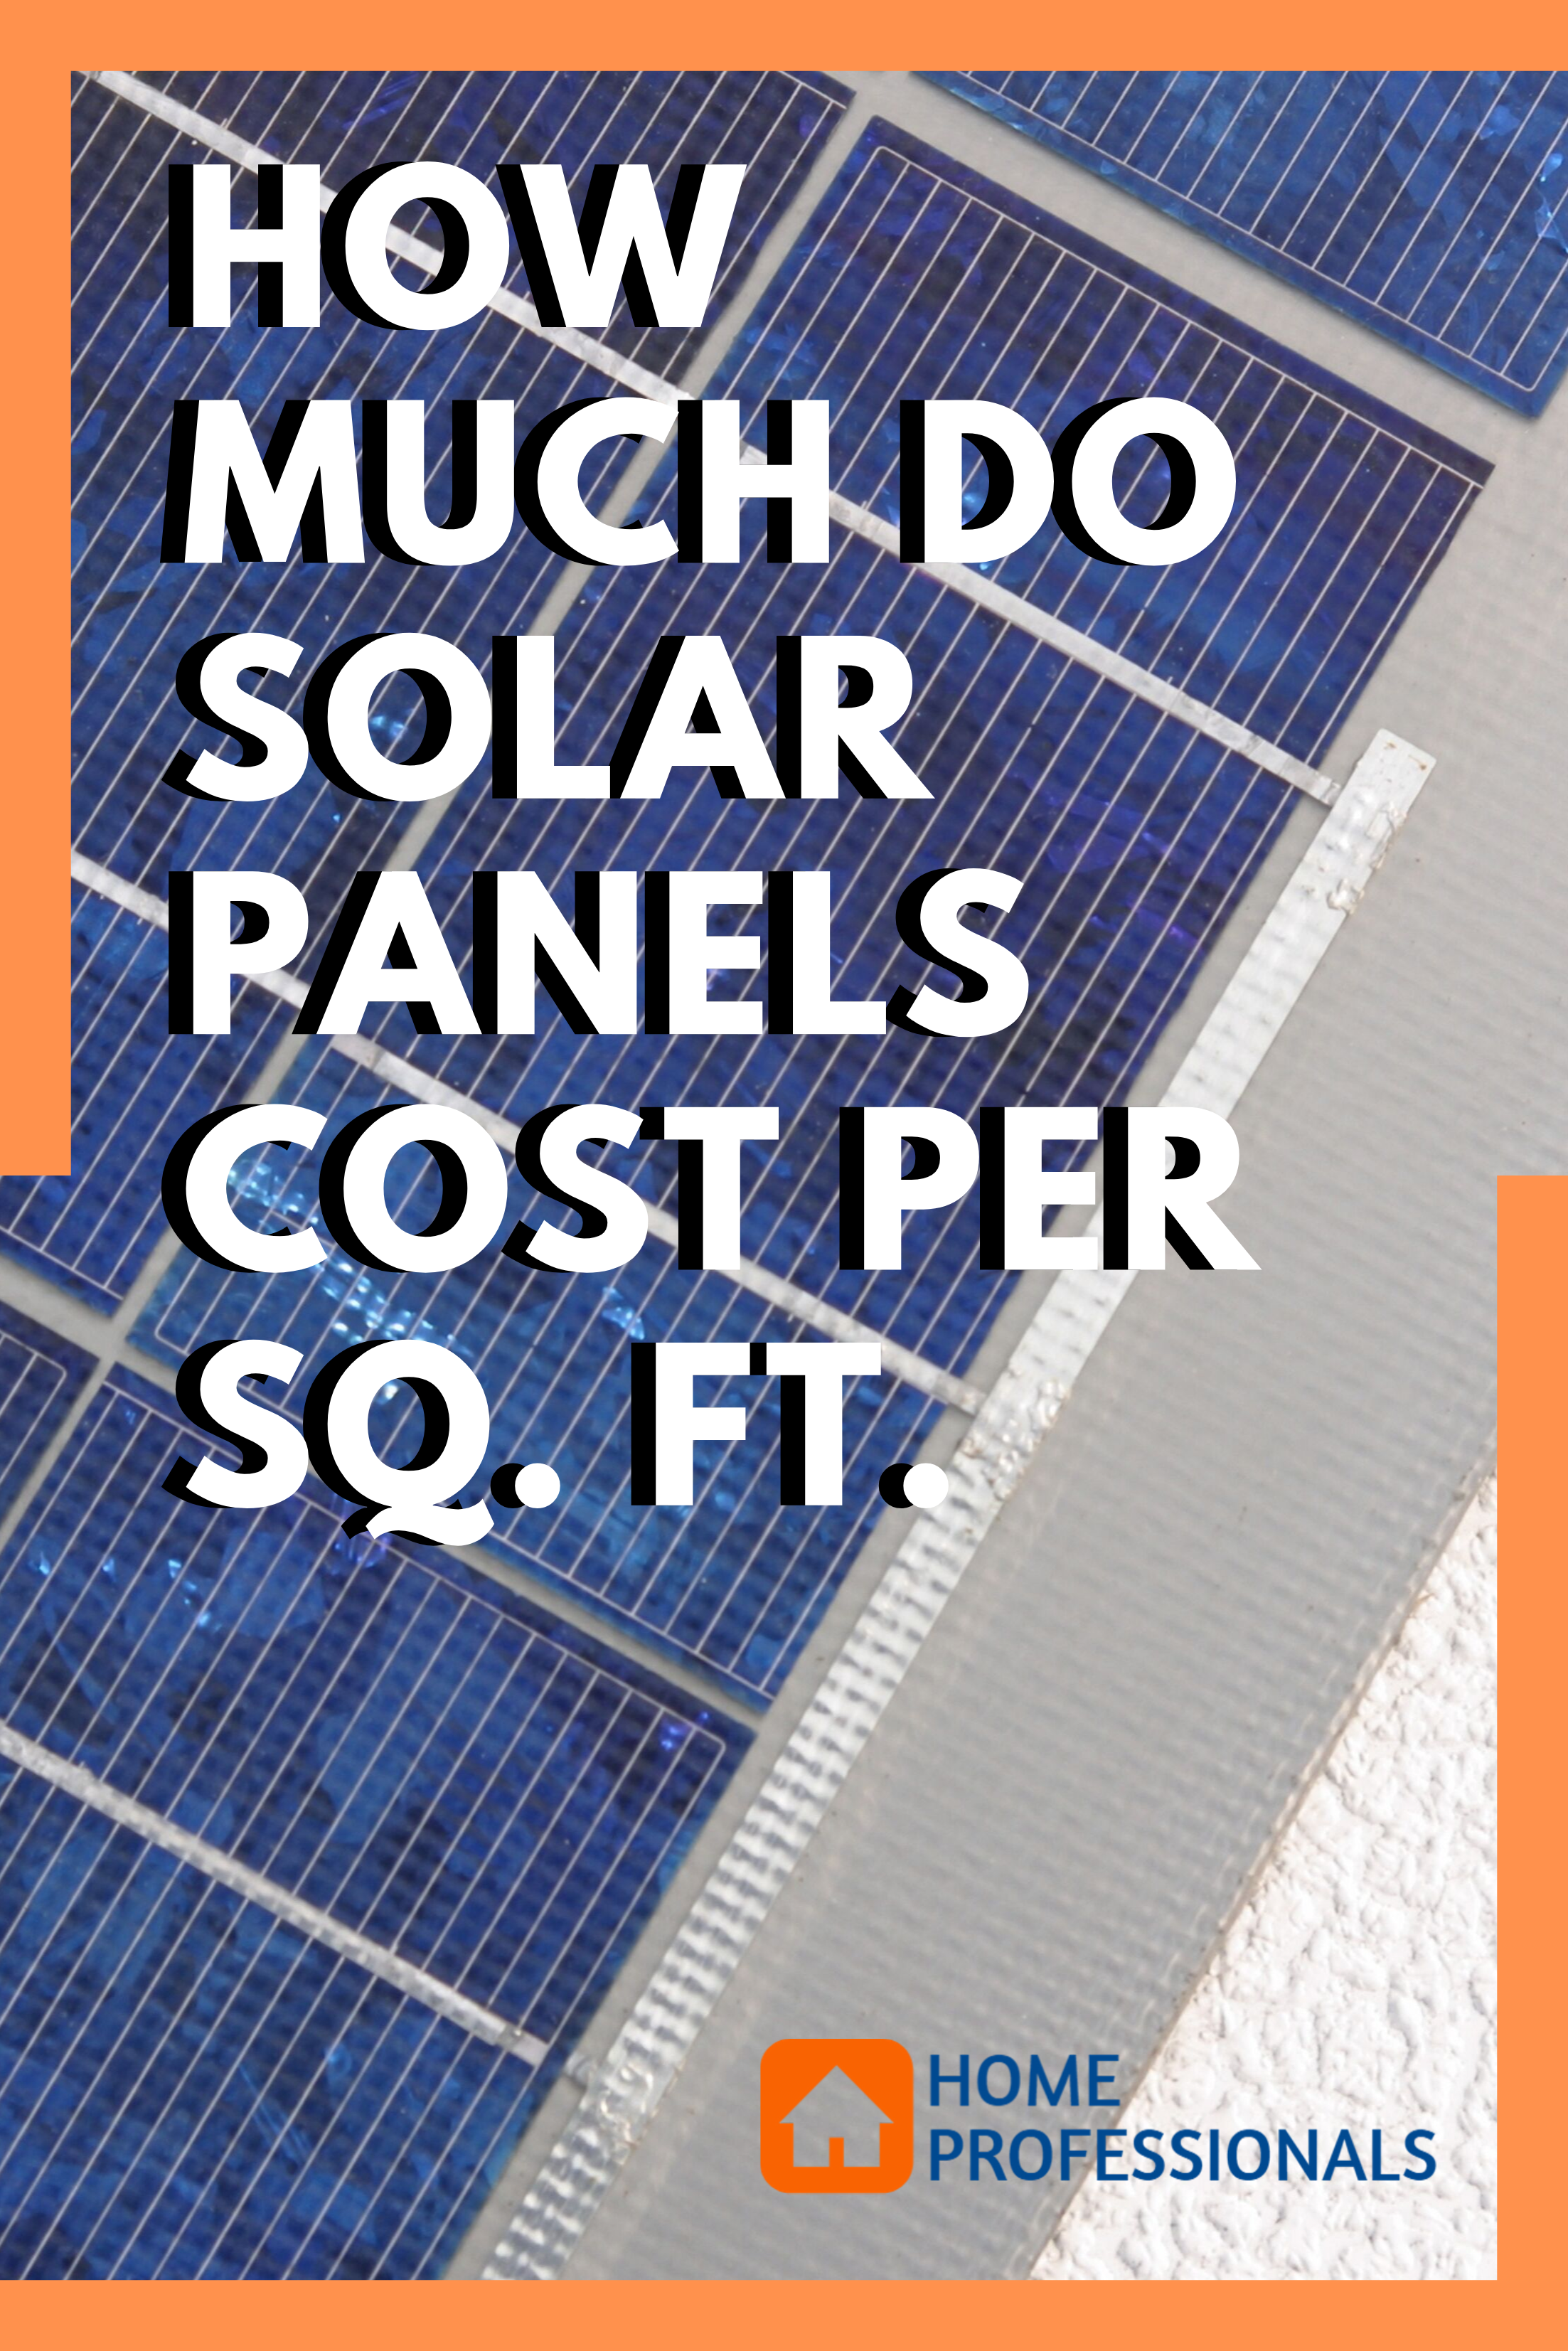 How Much Do Solar Panels Cost Per Sq Ft Solar Panel Cost Solar Solar Panels